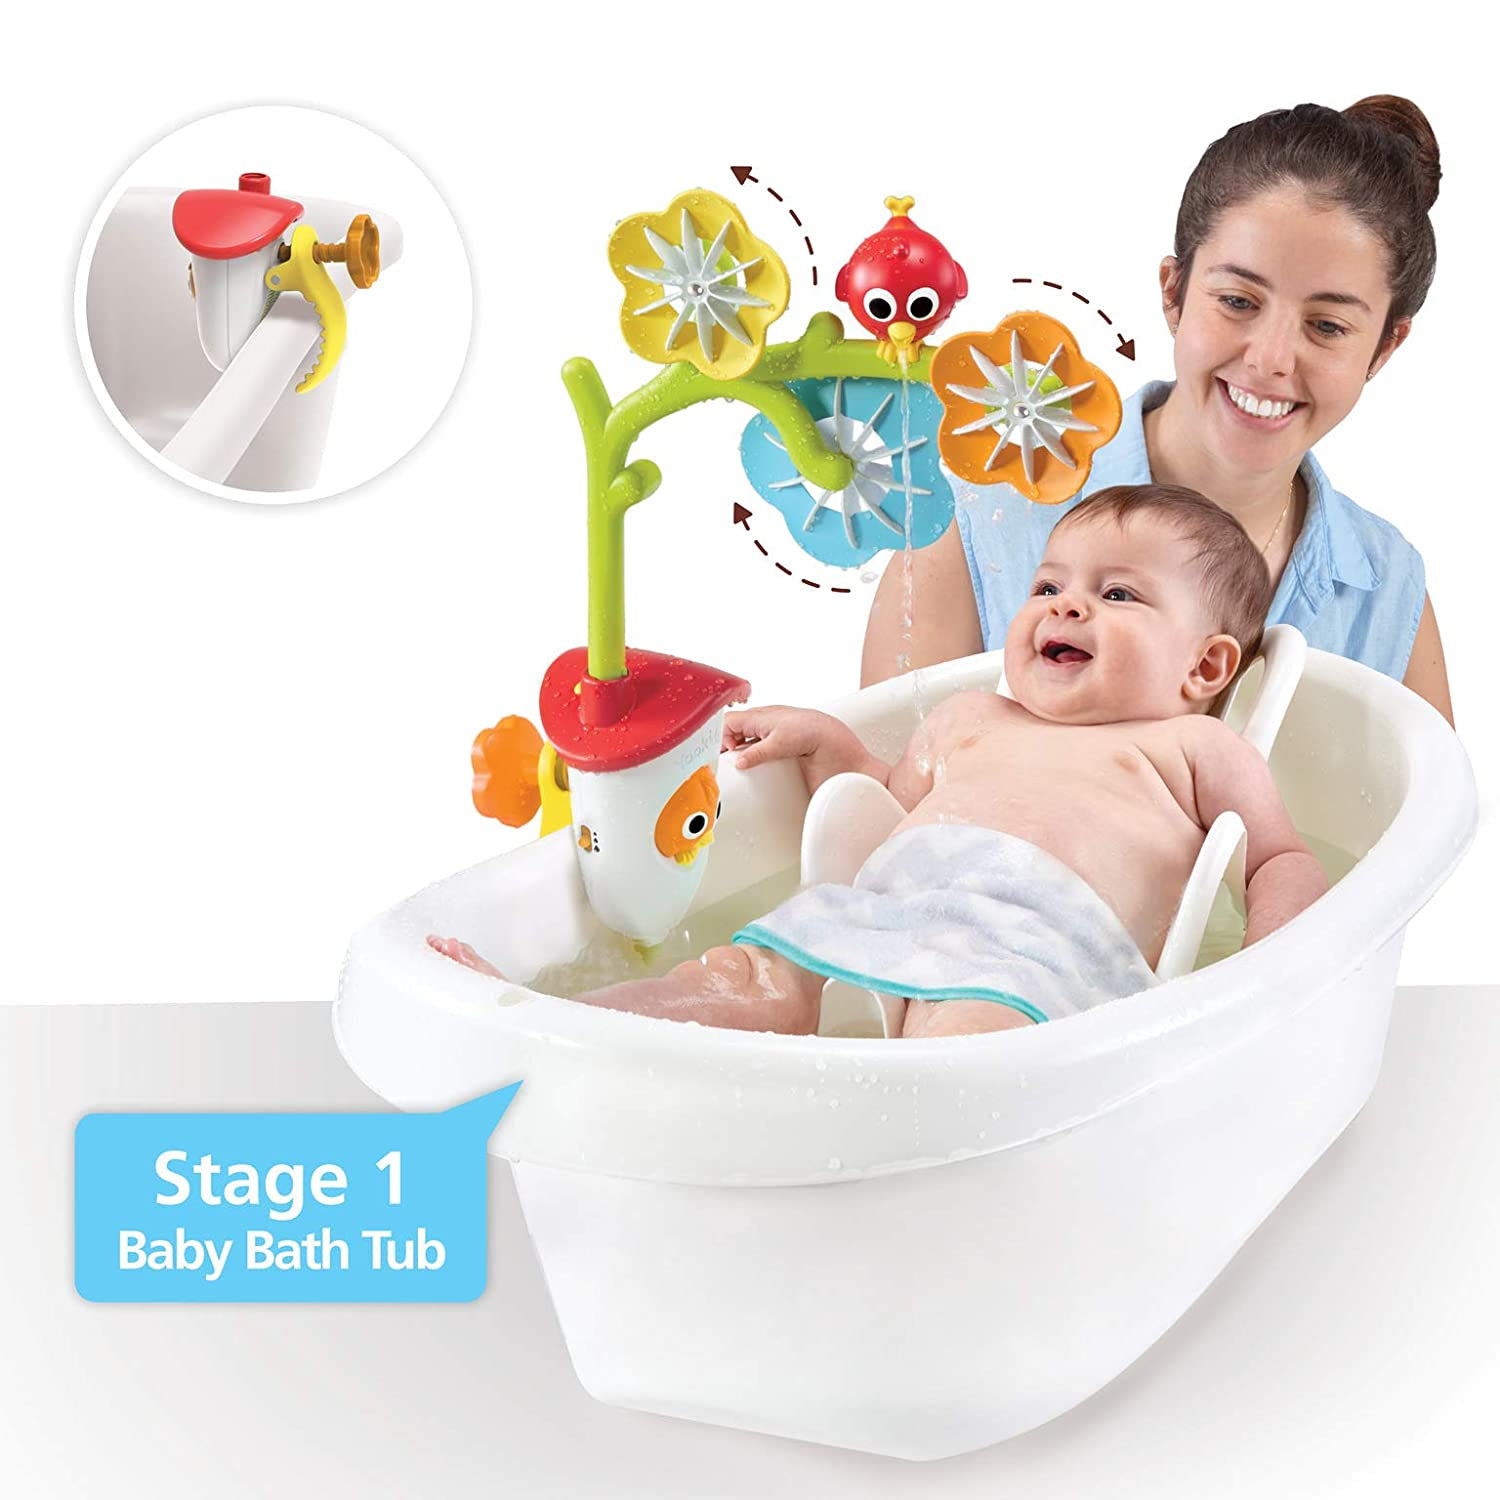 Yookidoo baby bath mobile spinning flowers and swiveling fountain for newborn and toddler bath time sensory development attaches to any size tub wall